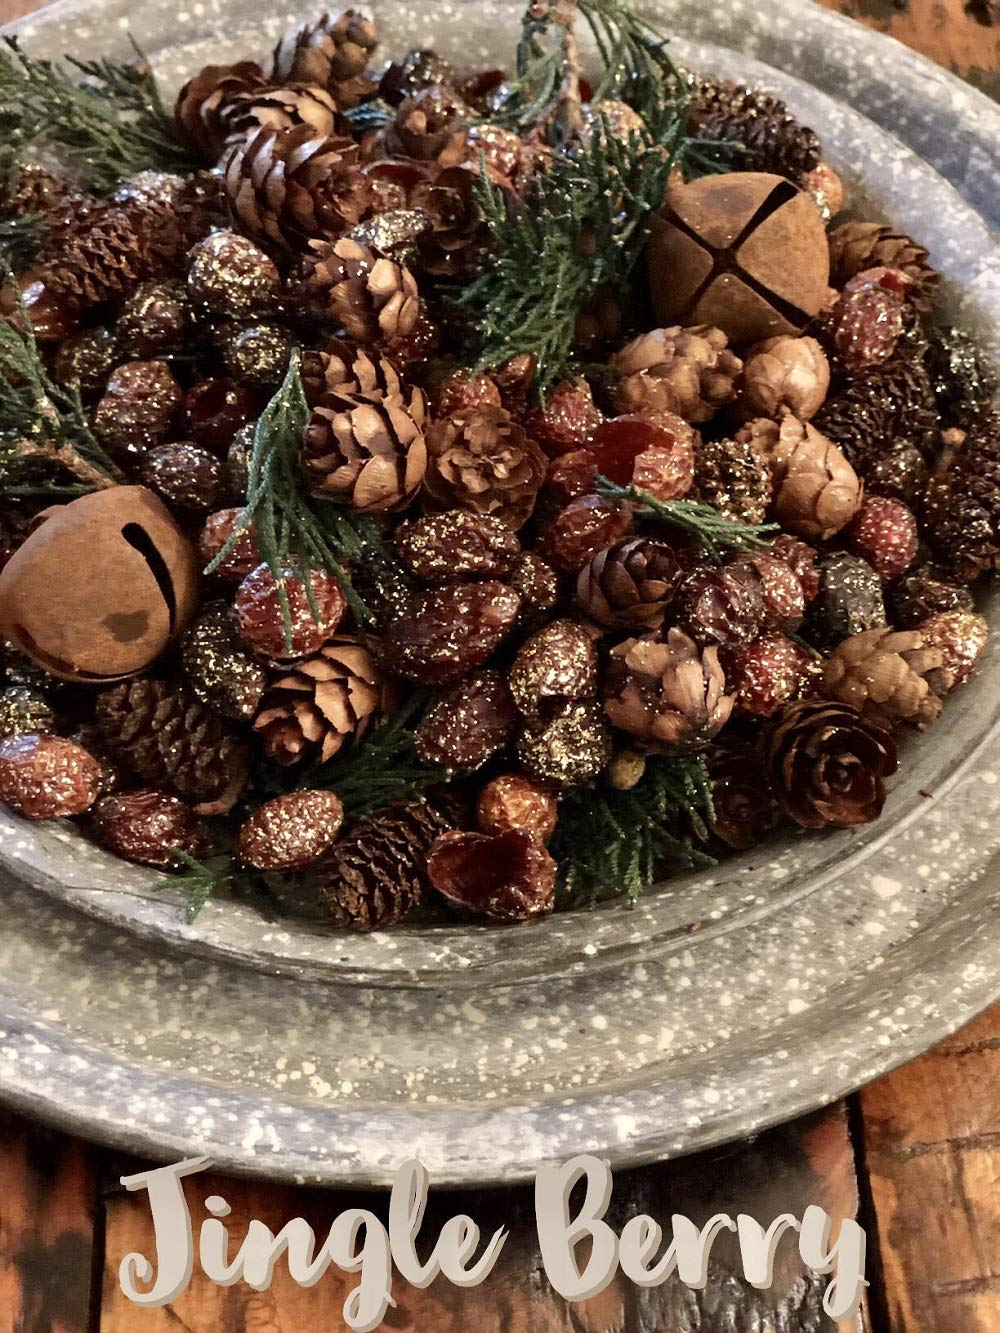 Homestead Studios Jingle Berry Potpourri - Sparkly Holiday Berry Bling with hints of Juniper and Jingle Bells - Fall, Winter Summer, All Year Round